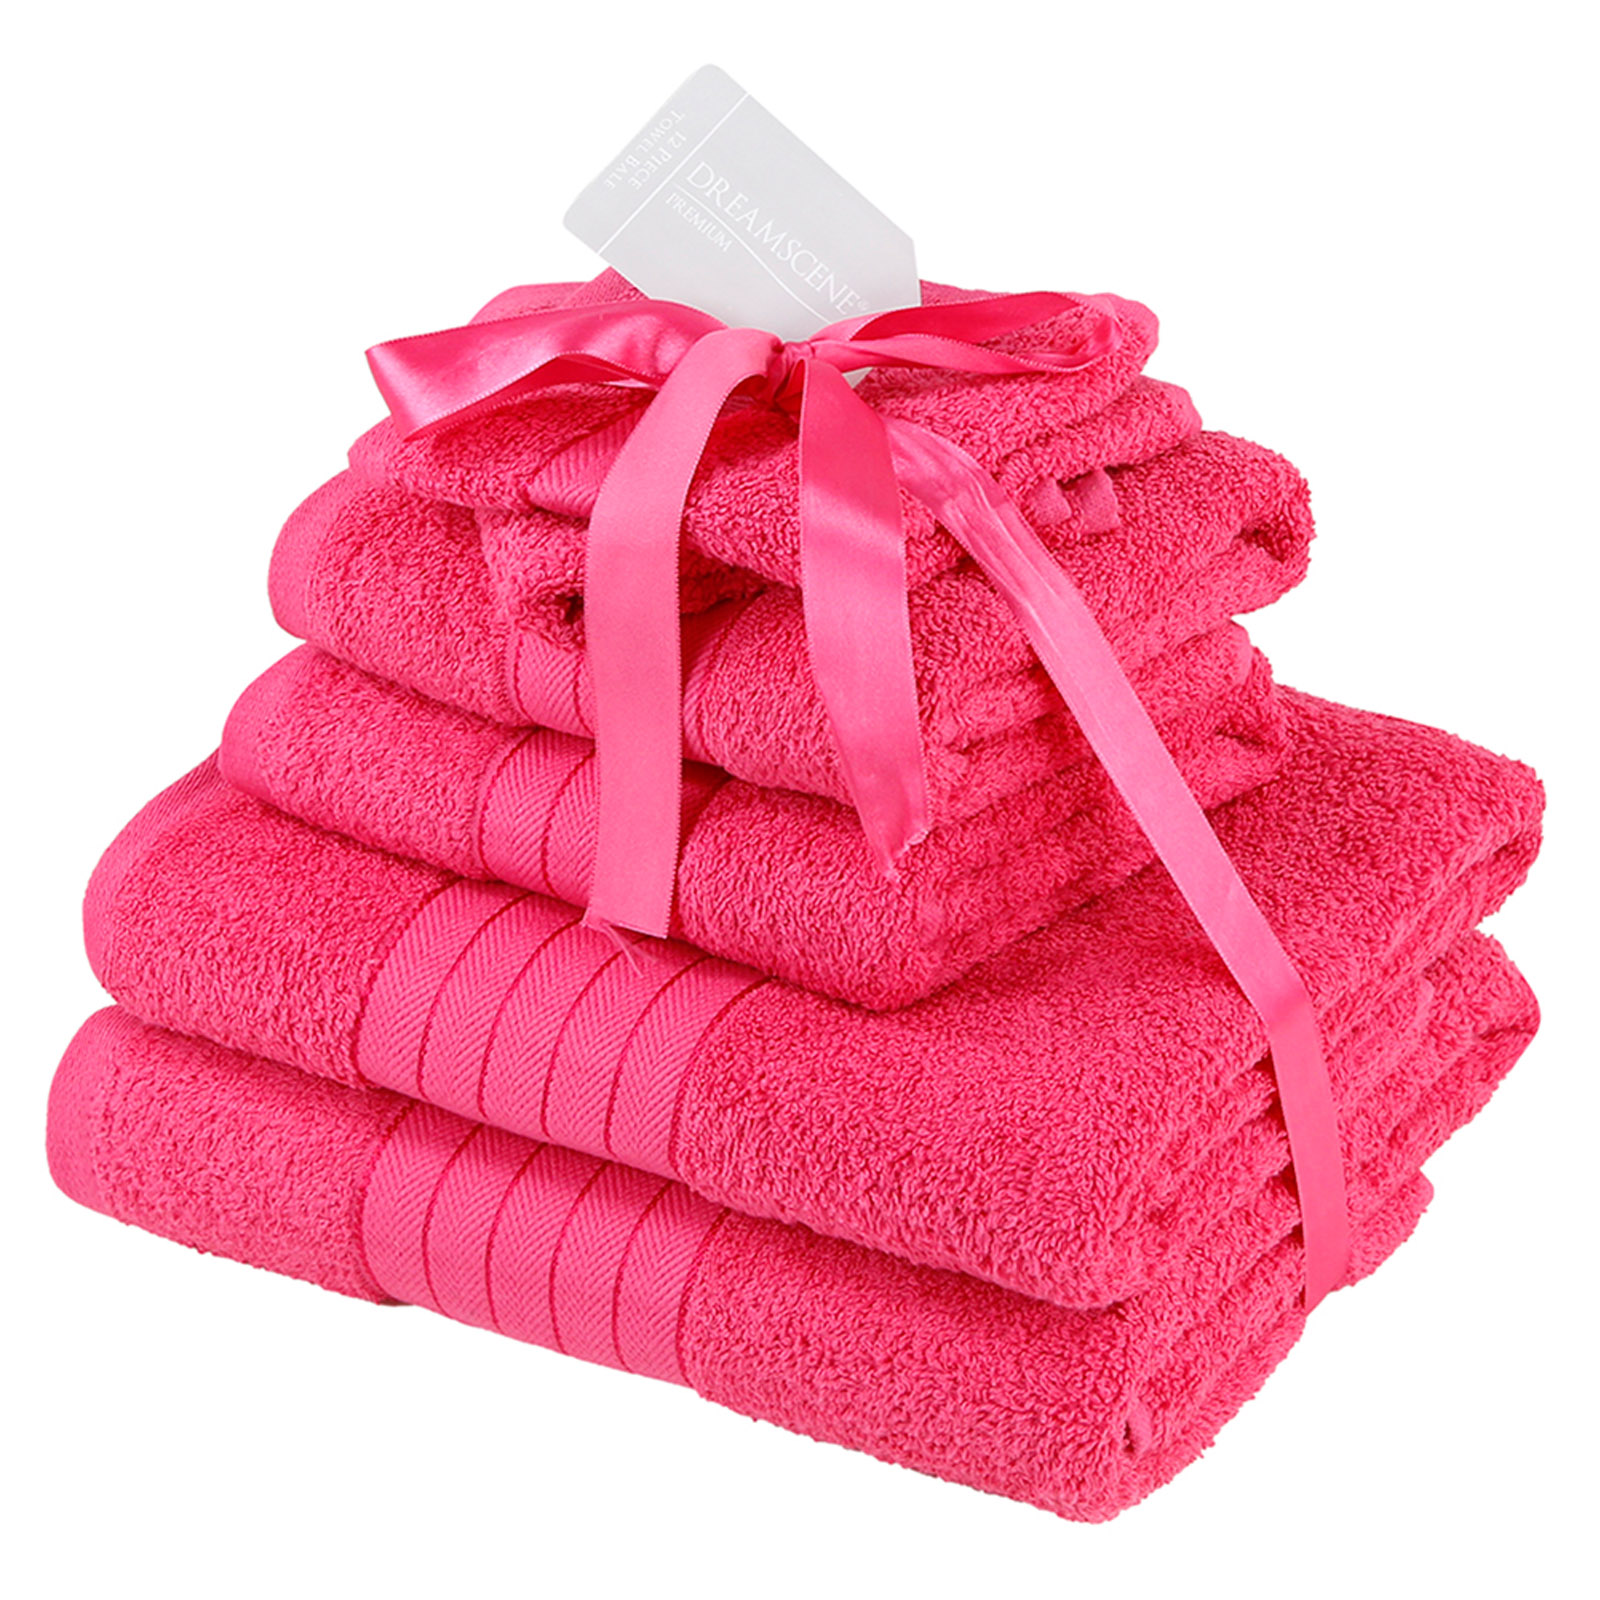 Face Towel Dream Meaning: Dreamscene Luxury 100% Cotton Face Hand Bath 6 Piece